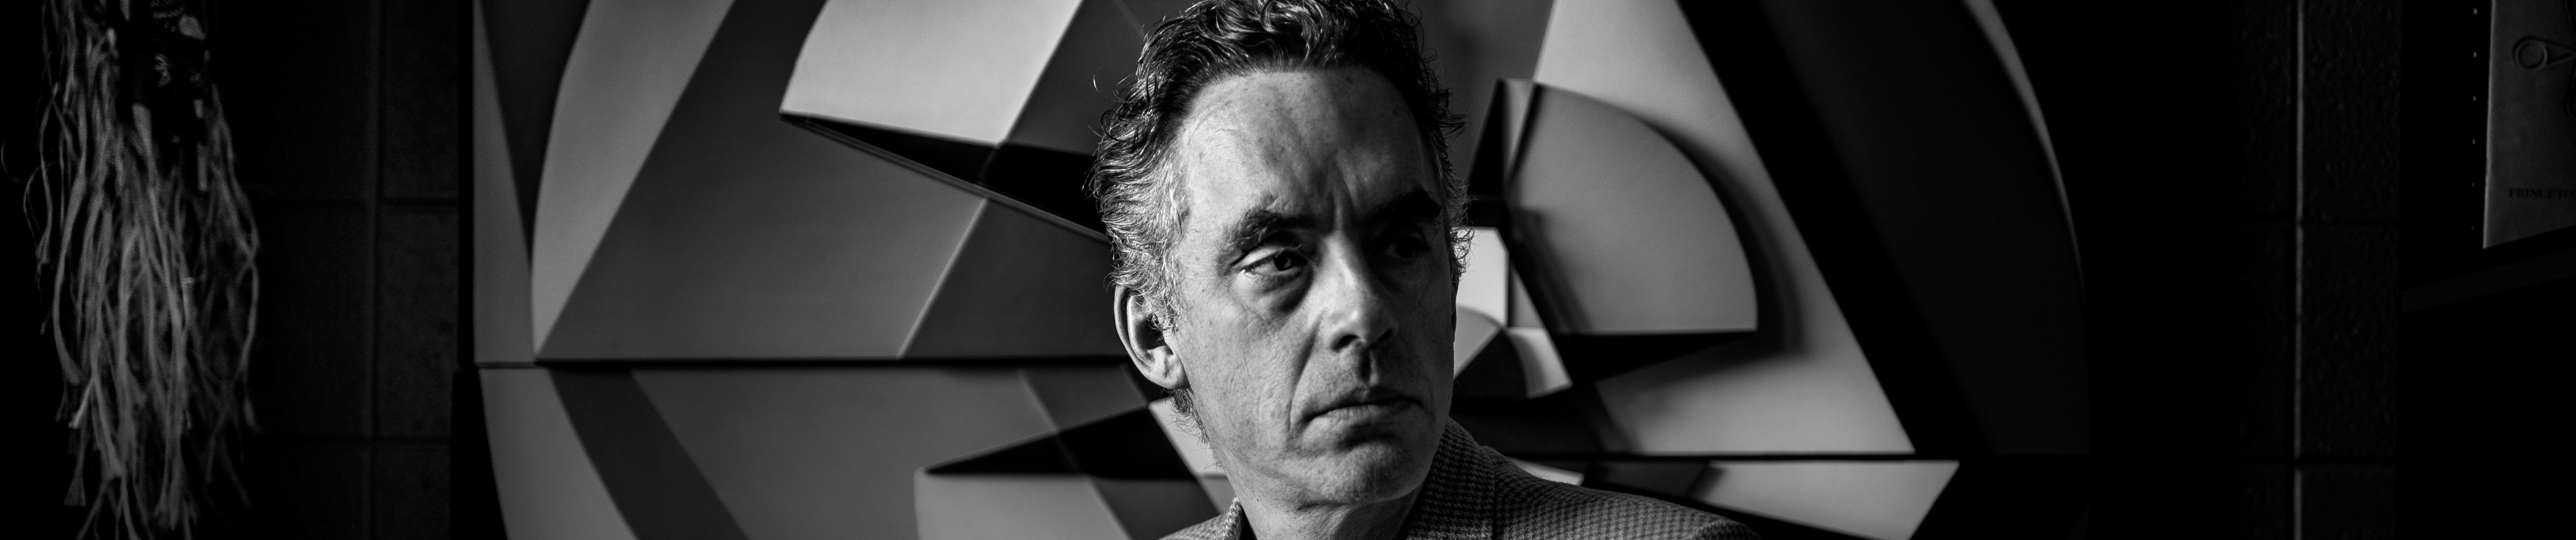 55 - August 2018 Q & A by The Jordan B Peterson Podcast | Free